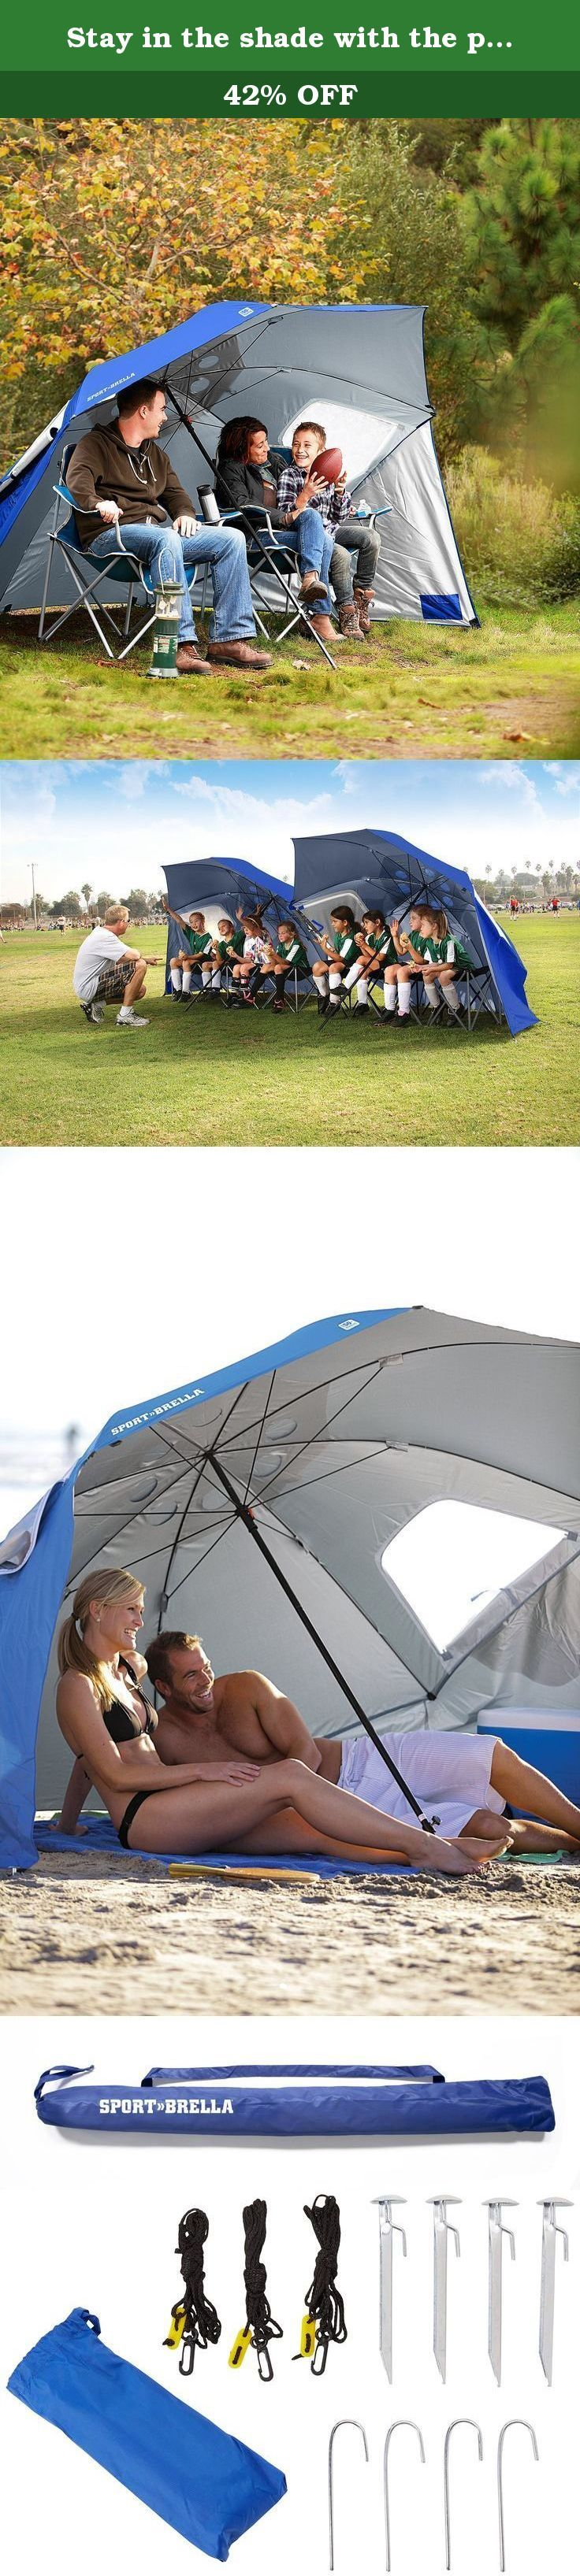 Stay in the shade with the portable Sport-Brella Umbrella. Get instant protection from the sun, rain and wind with this SPF 125 shelter. Stay safe and protected from the sun or the rain with the Sport-Brella for all your outdoor adventures. Whether it's time for the football championships, or you're spending your day on the shore, be confident that you have shelter with this 8 ft. wide canopy umbrella. With UPF 50+ protection, and 99.5% protection from UVA and UVB light, you'll have a…